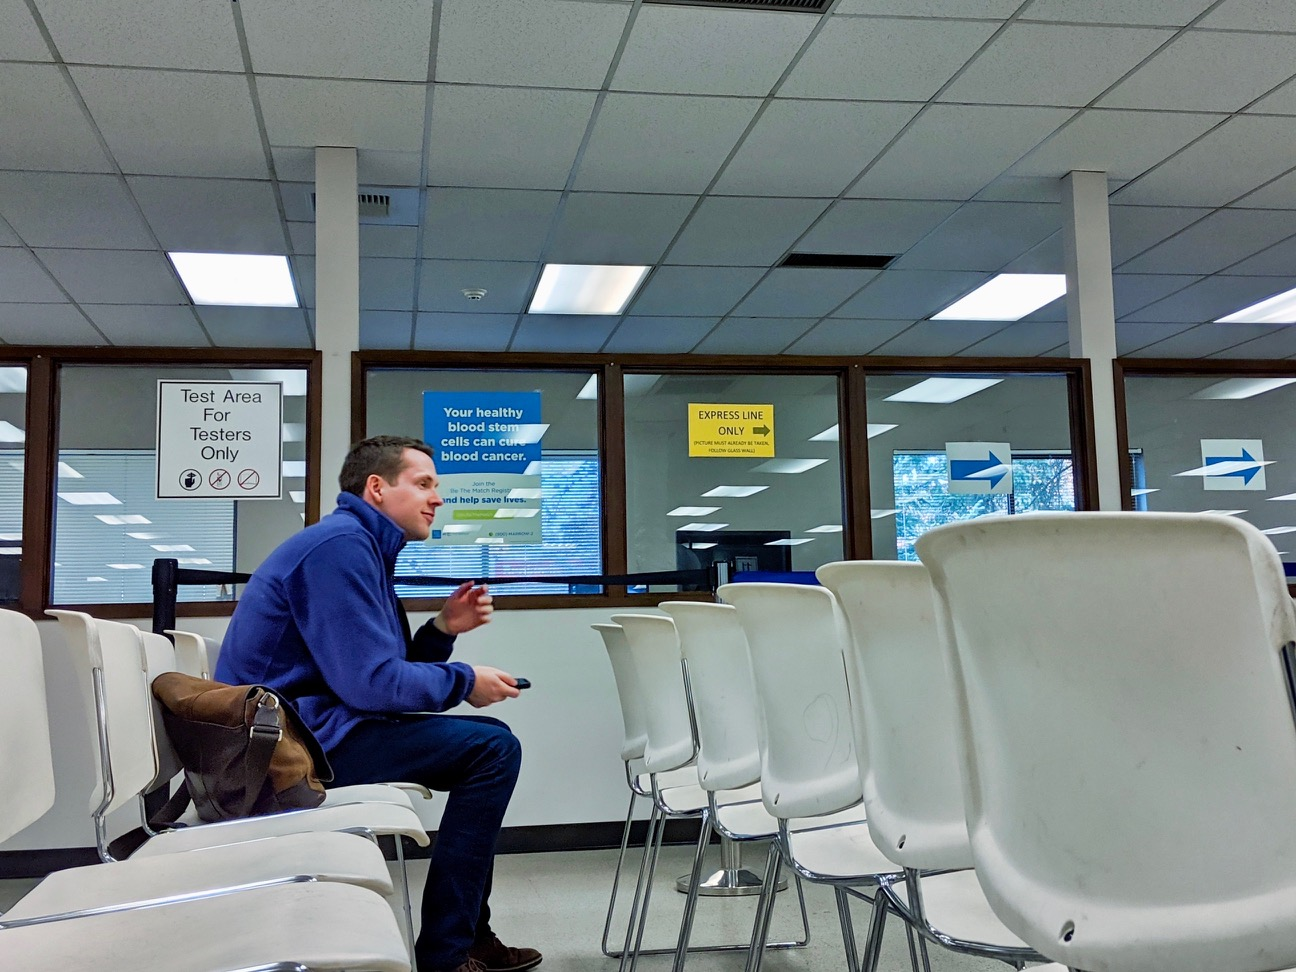 A man sitting inside a DMV office